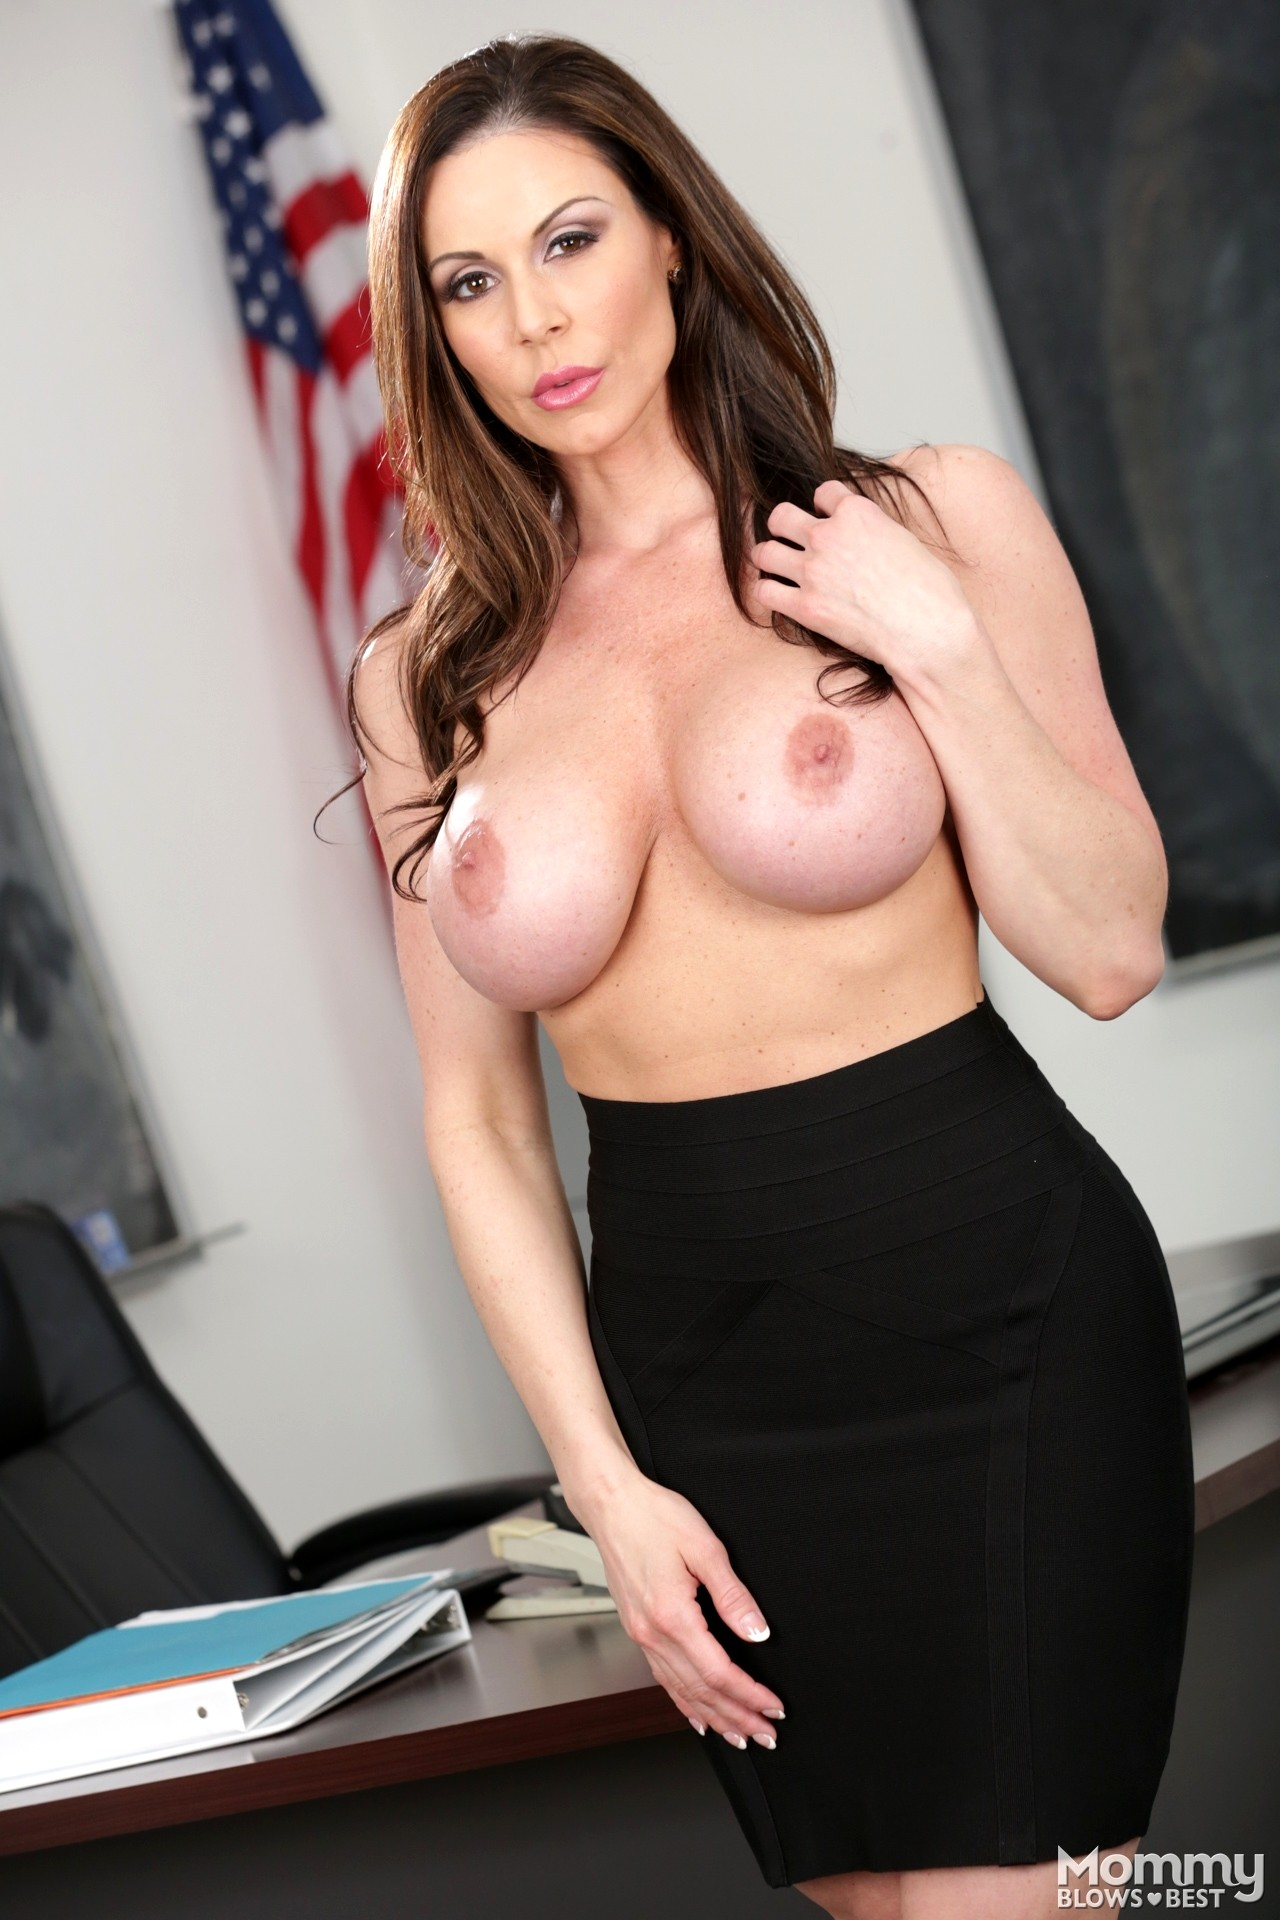 Mommy Blows Best Kendra Lust